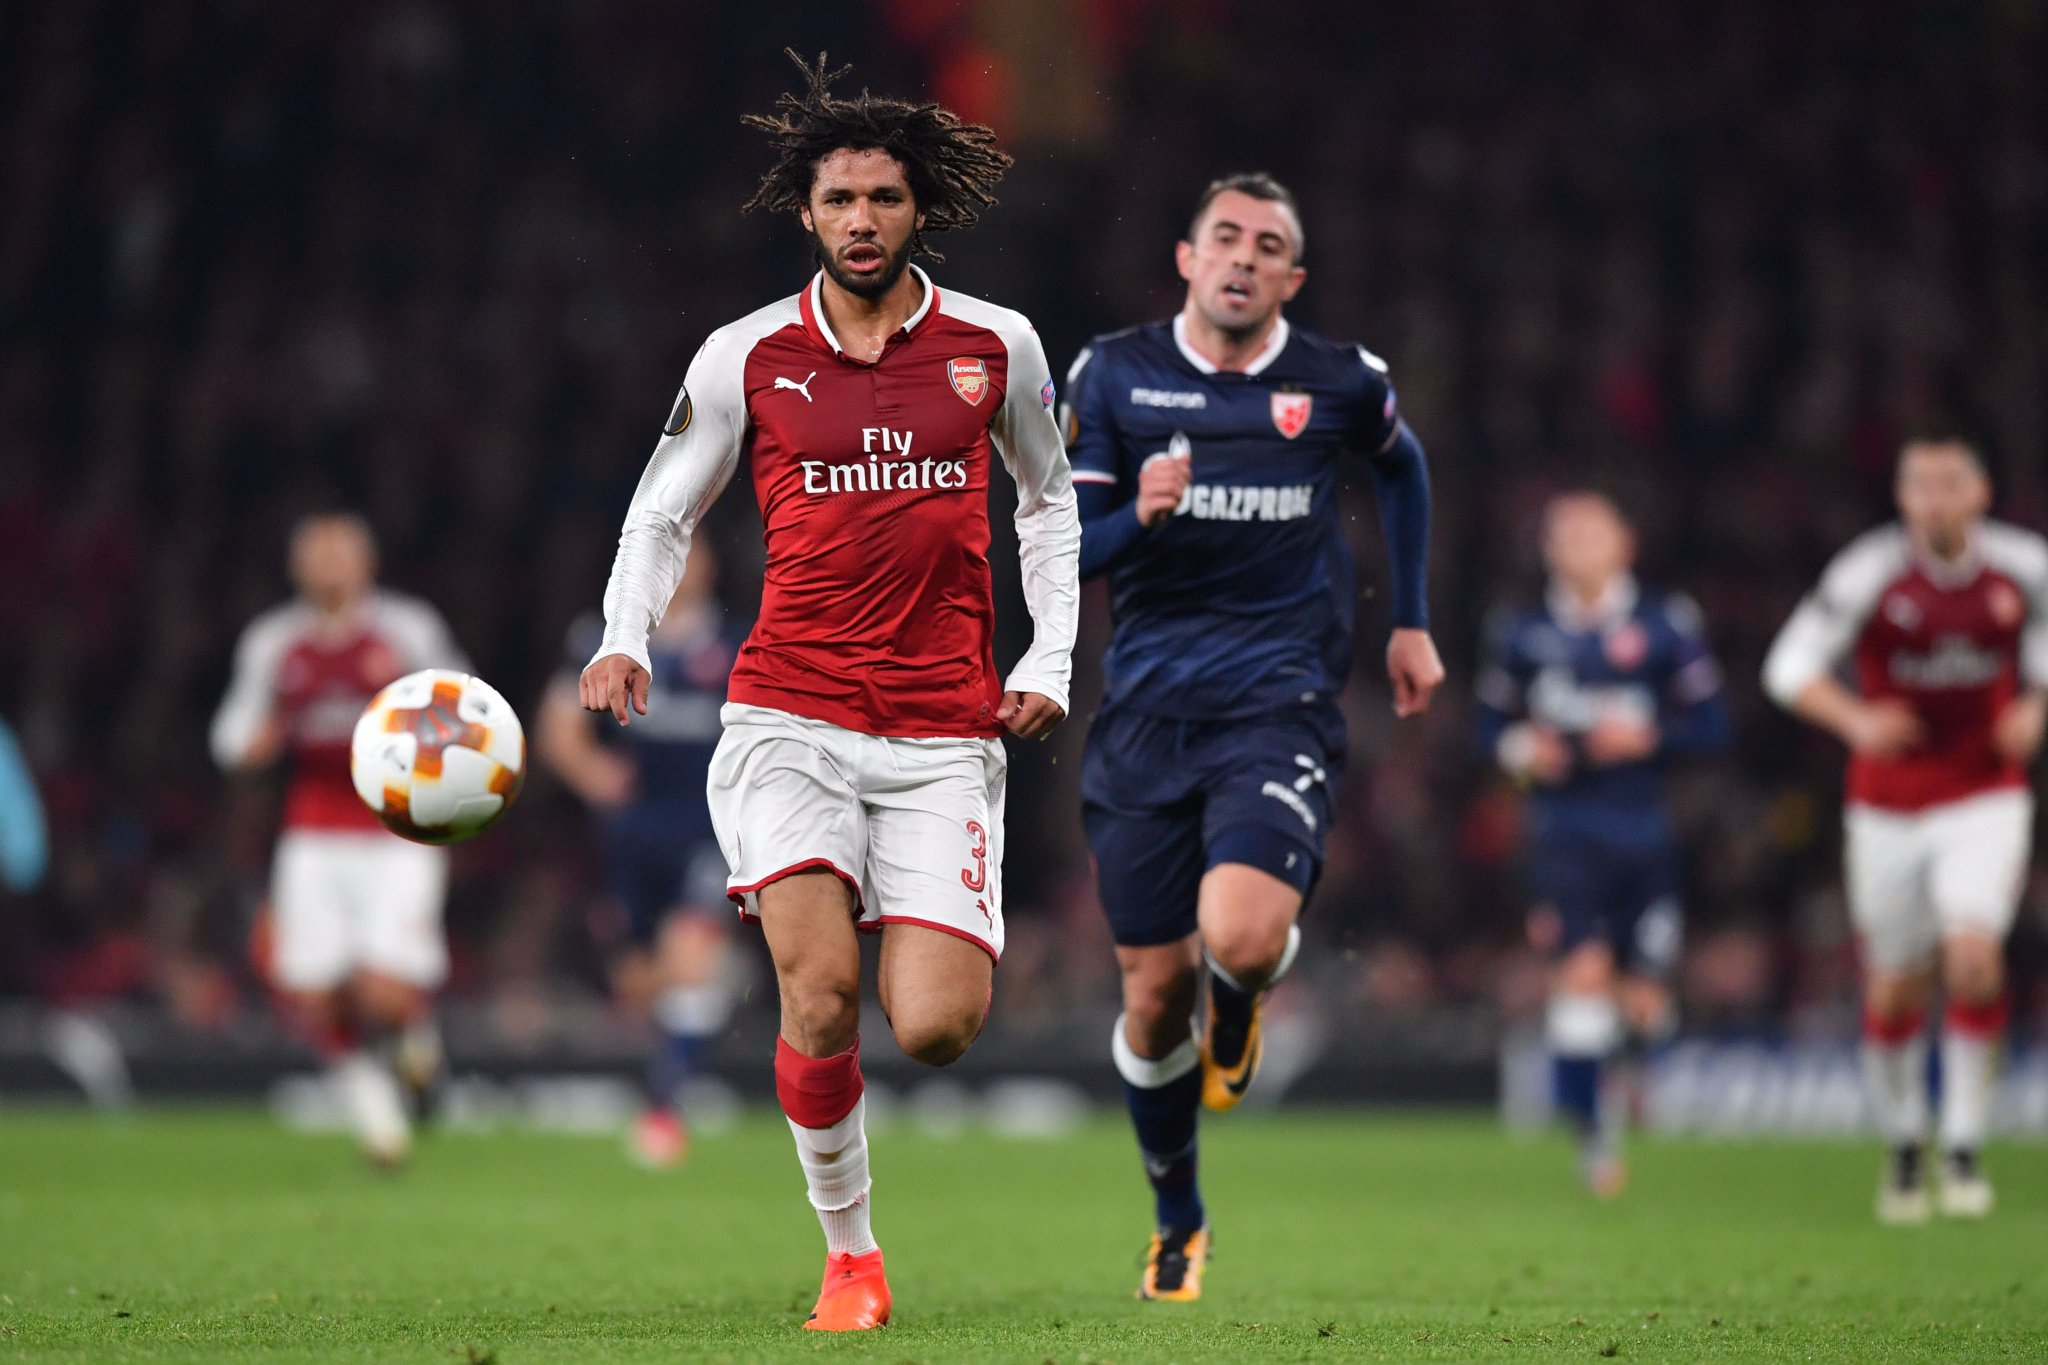 Europa League: Iwobi Rested As Arsenal Advance; Nwakaeme, Gero In Action, Ogu Benched